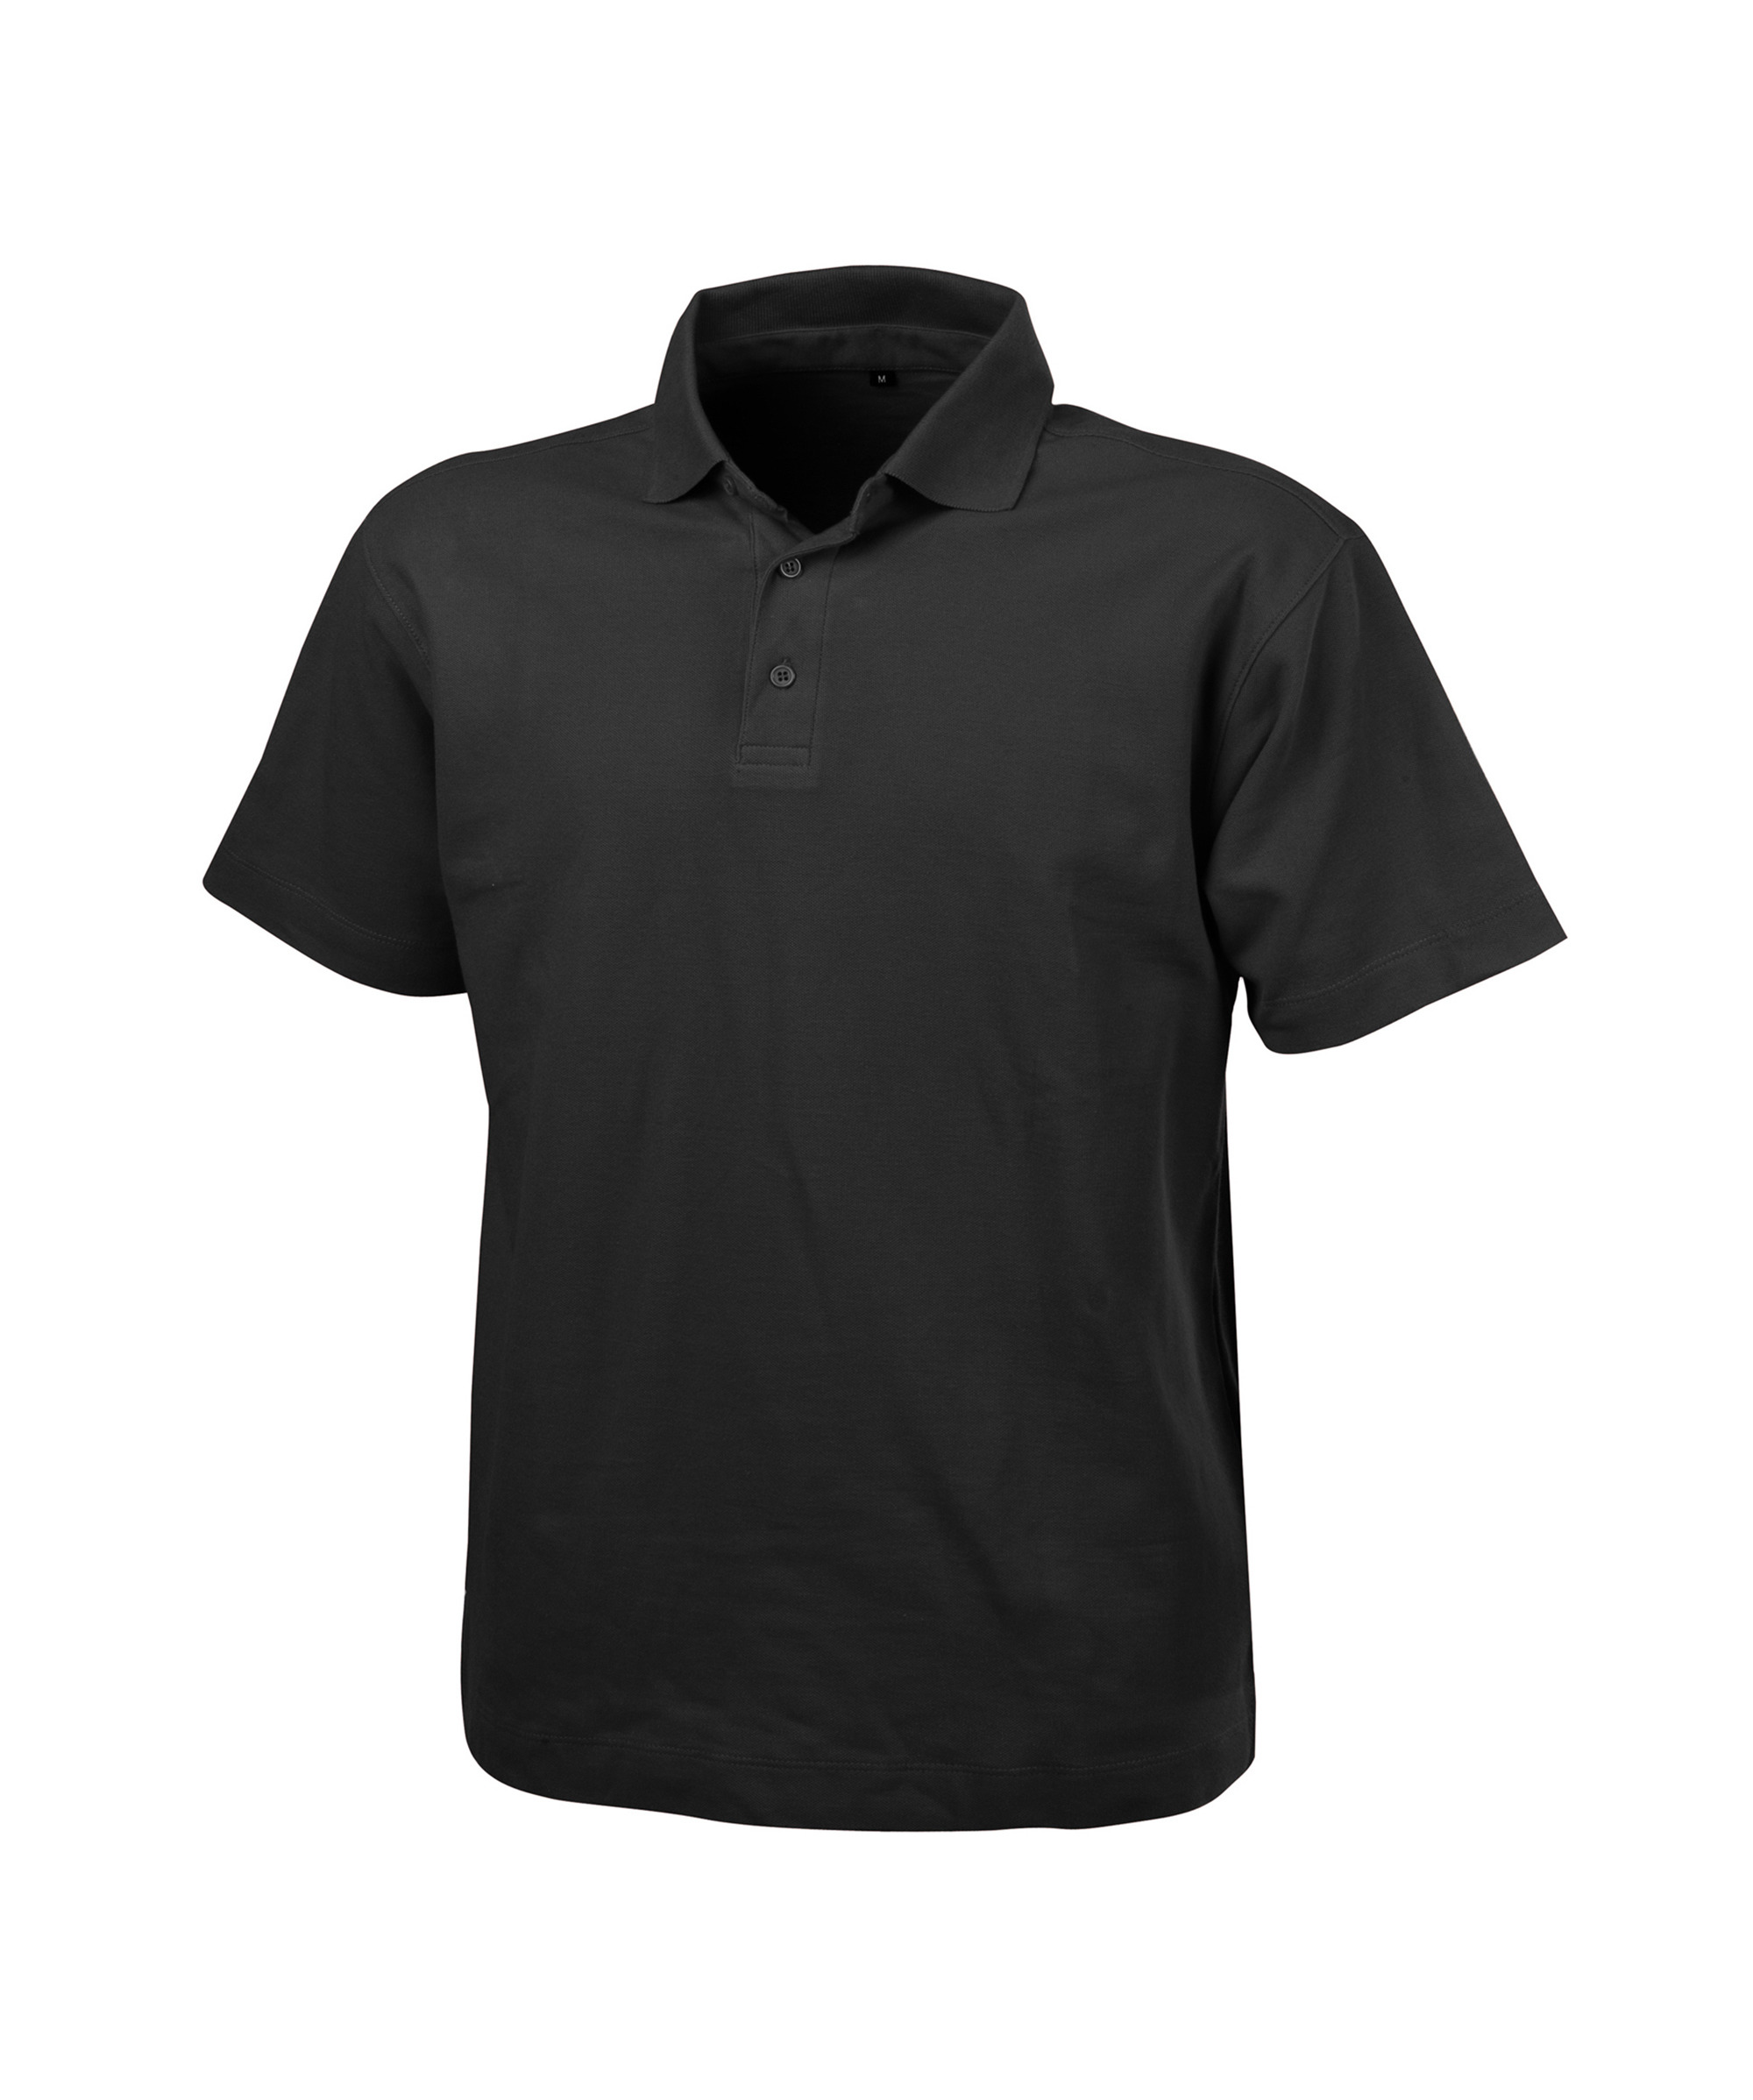 Navy Details about  /DASSY Traxion 710026 Work Polo T-Shirt